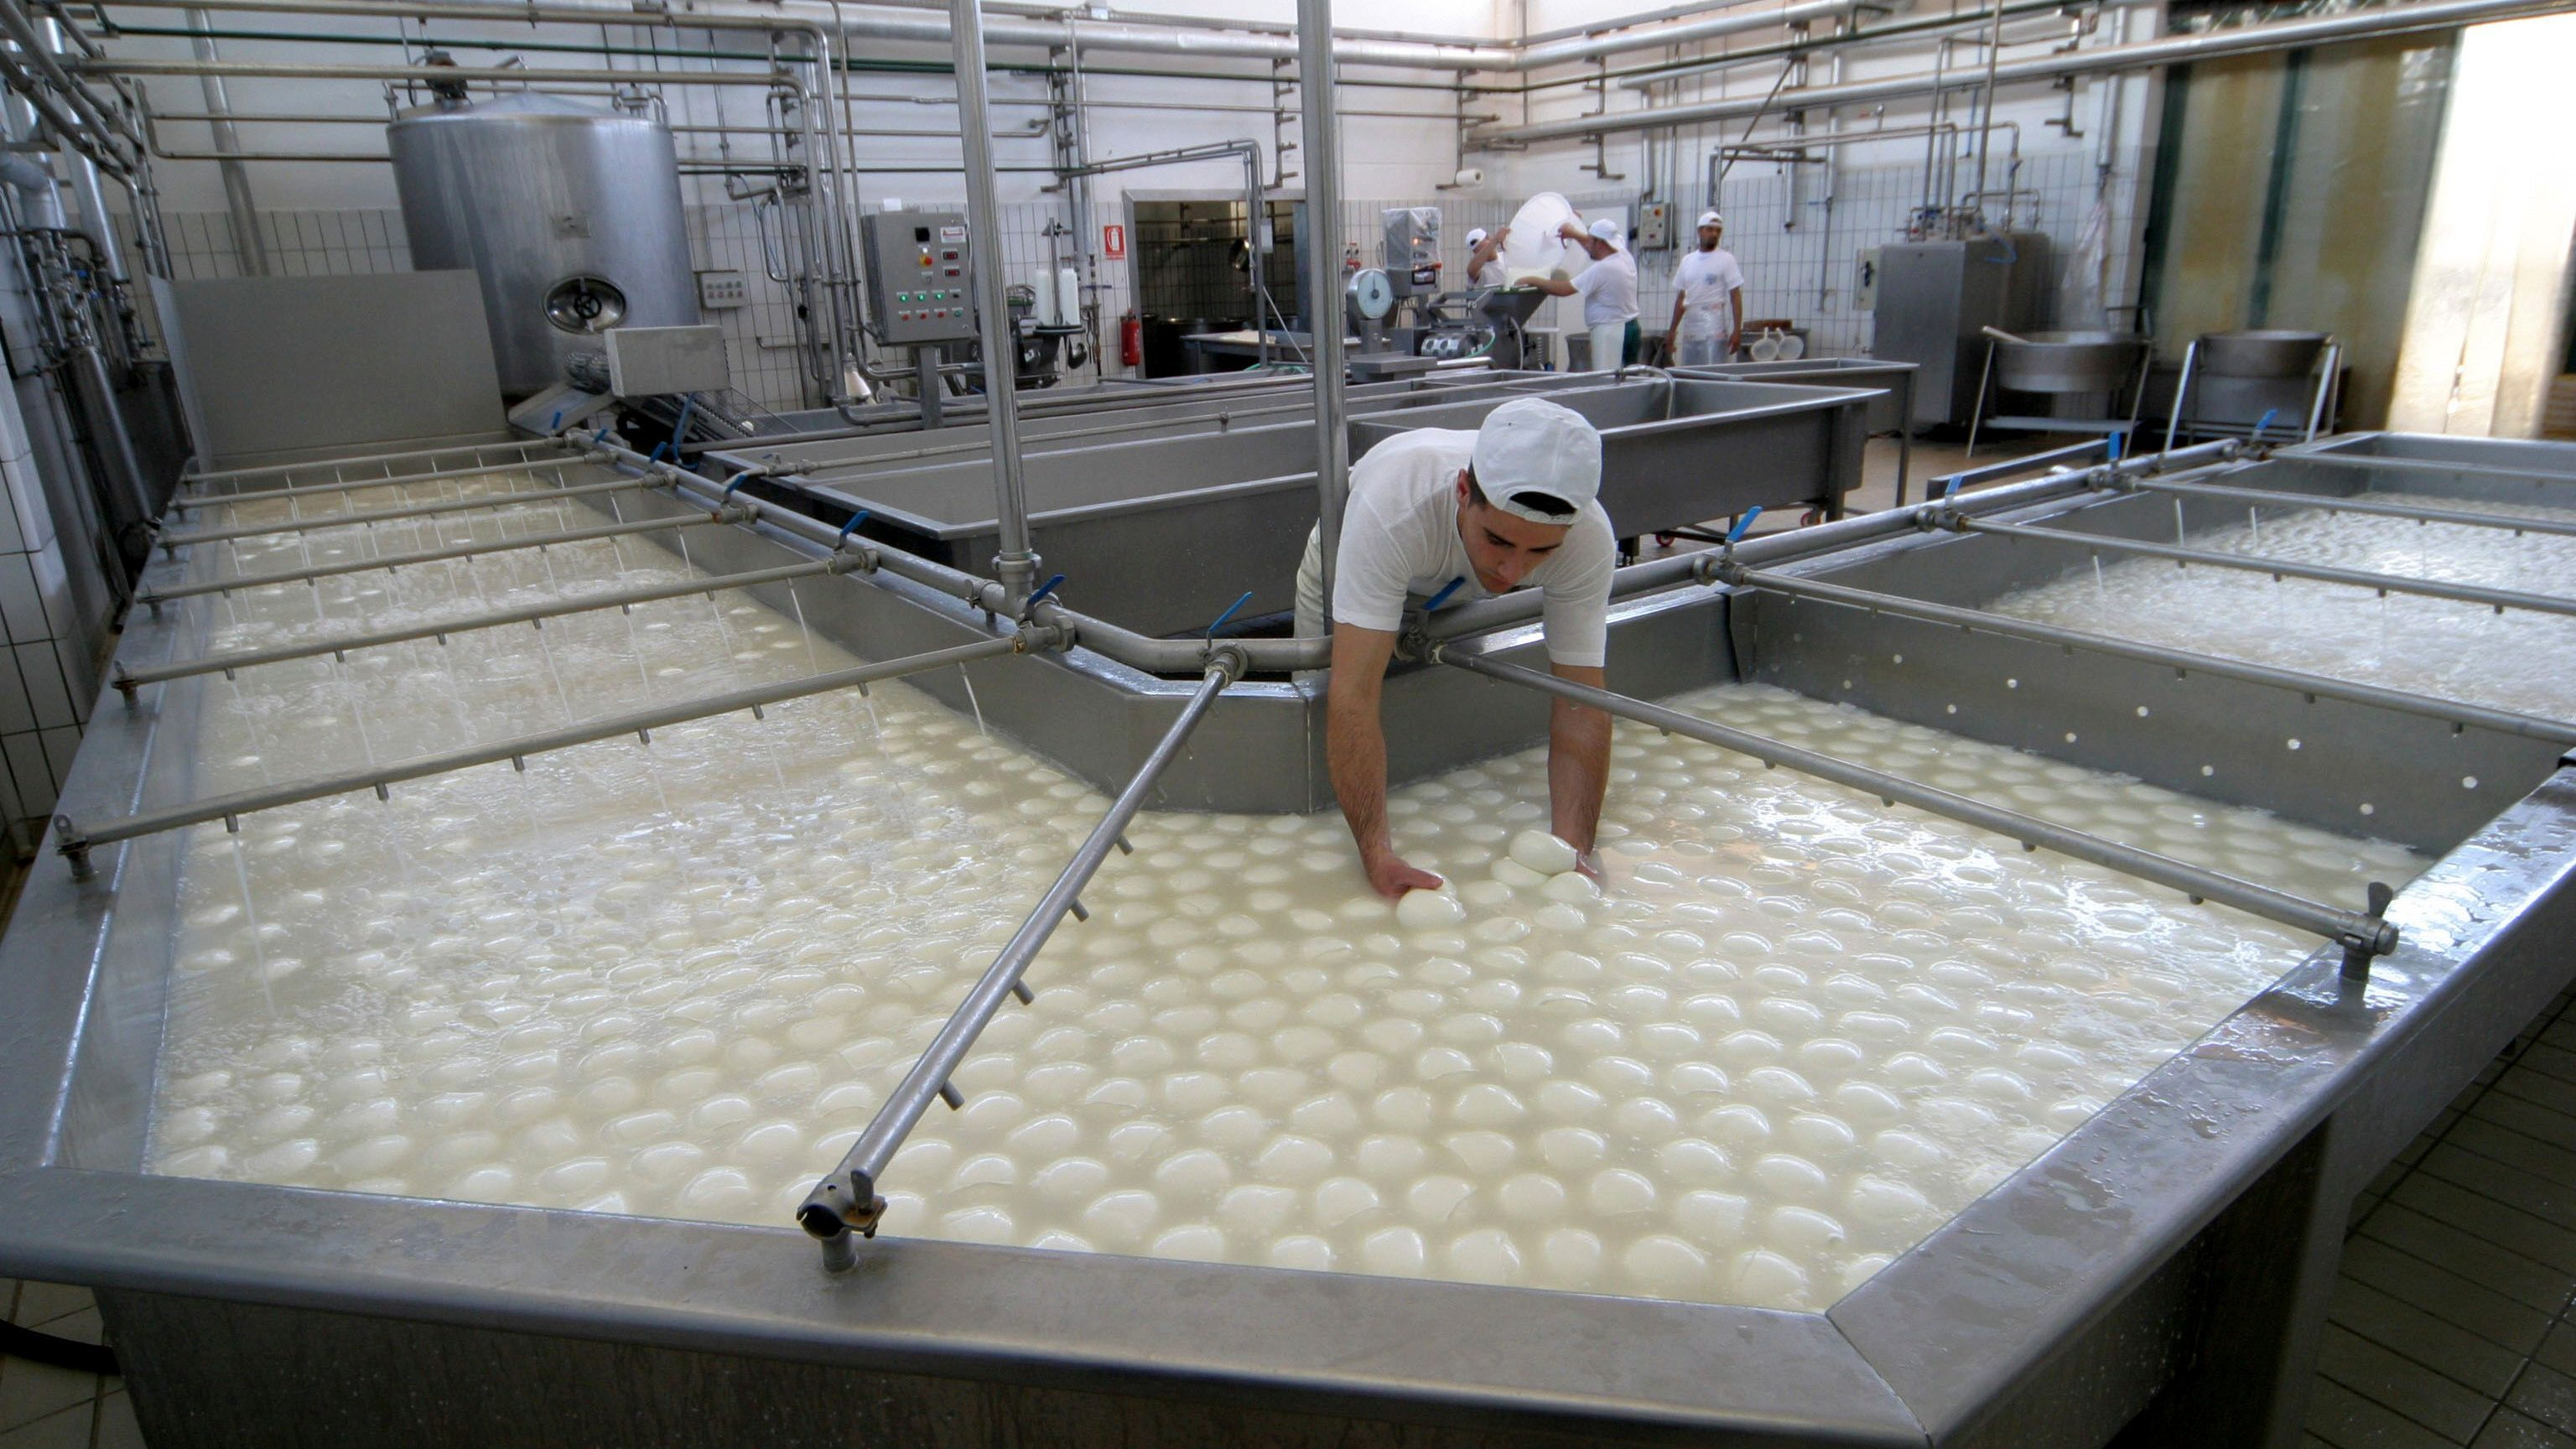 Buffalo mozzarella cheese is prepared at a dairy in Caserta, near Naples, southern Italy, in this 2006 photo. Makers of Italy's prized buffalo mozzarella took out full-page ads in Italian newspapers Friday, March 21, 2008 assuring consumers the cheese was safe after high levels of dioxin were found in some samples of buffalo milk. The tainted products came from a few buffalo dairies in the southern Campania region, whose reputation as a top agricultural producer already has been tarnished by the months-old garbage crisis that has fueled fears of food contamination. (AP Photo/Salvatore Laporta)